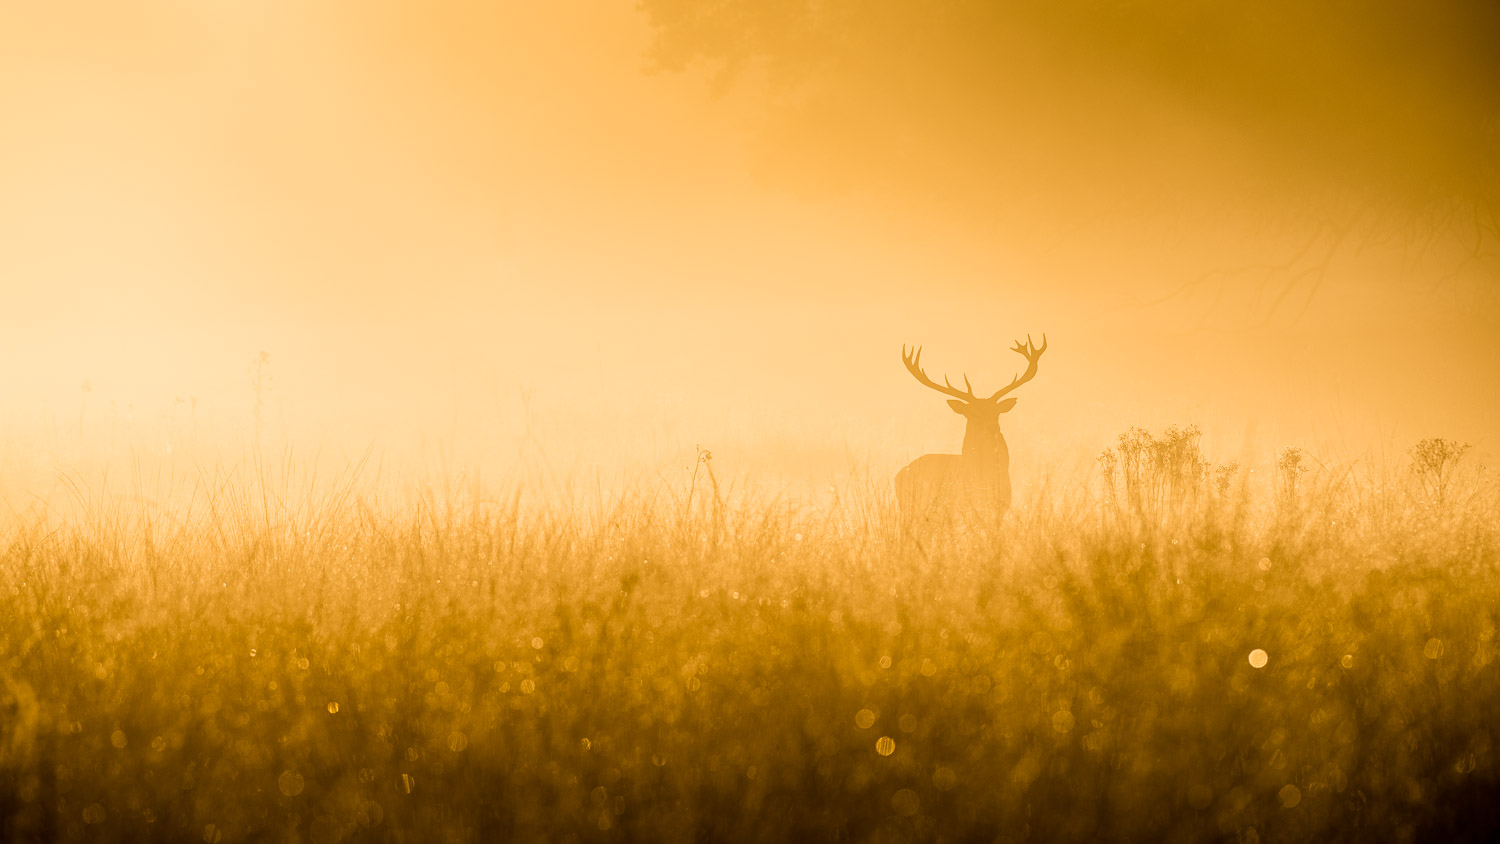 stag in early morning mist